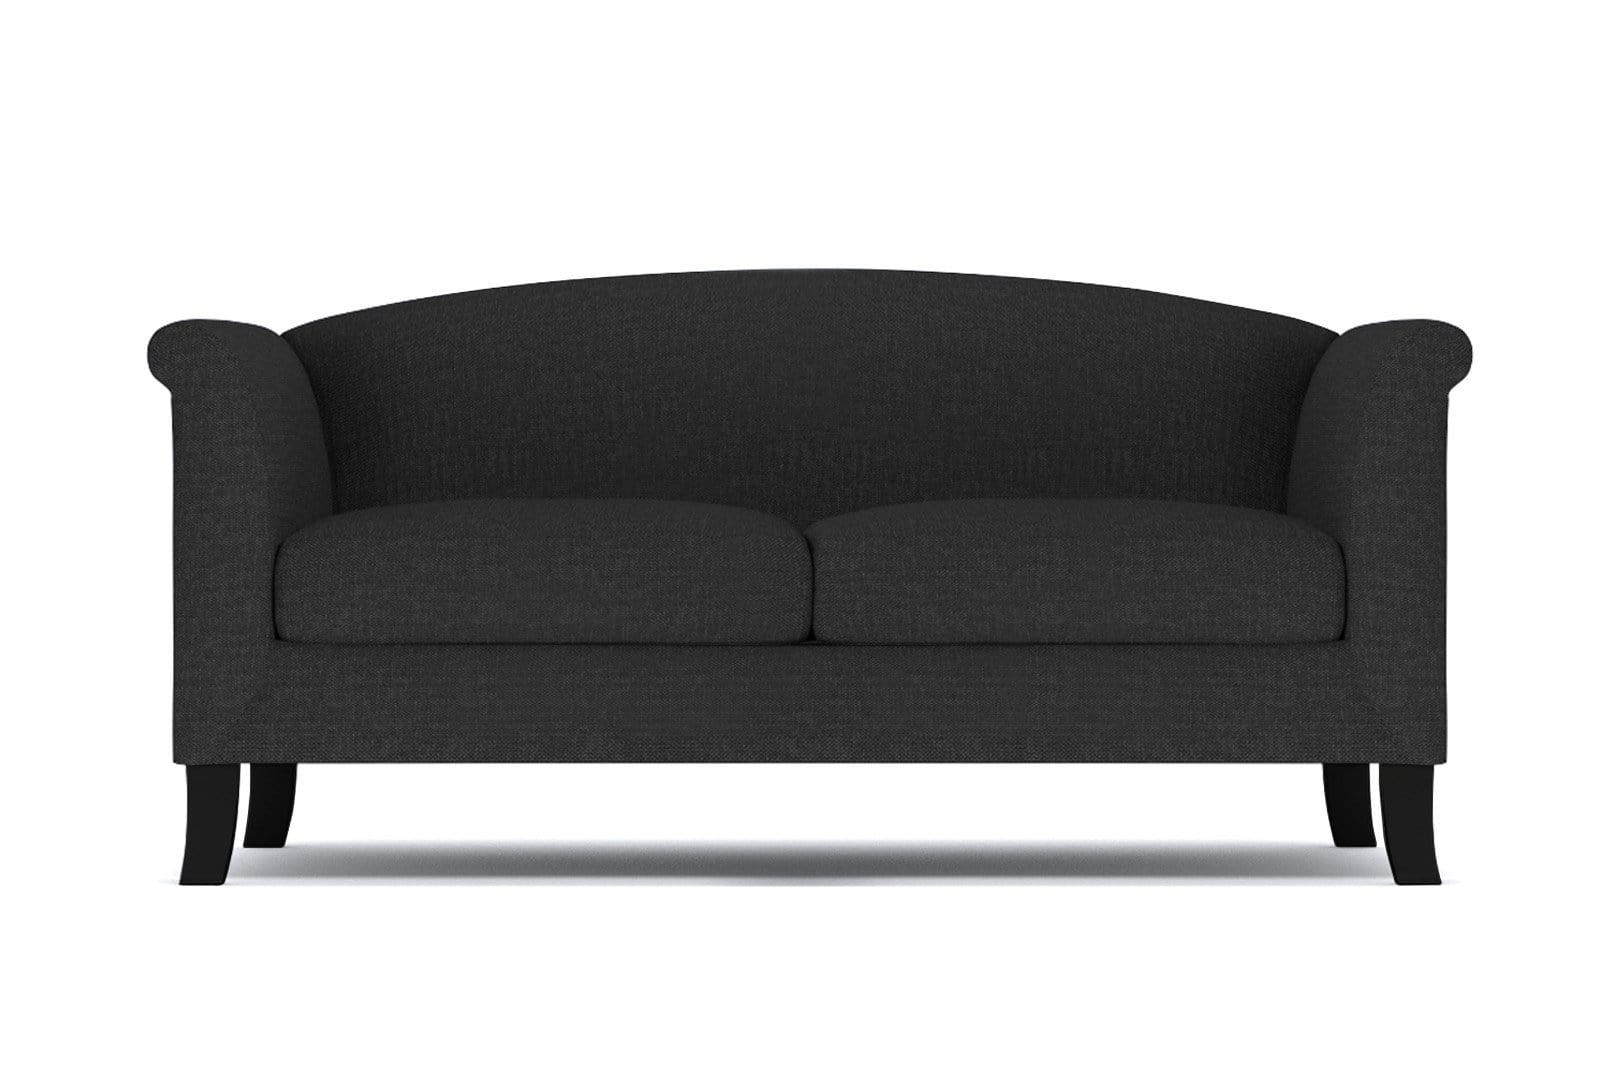 Albright_Apartment_Size_Sofa__Dark_Grey___Small_Space_Modern_Couch_Made_in_the_USA__Sold_by_Apt2B